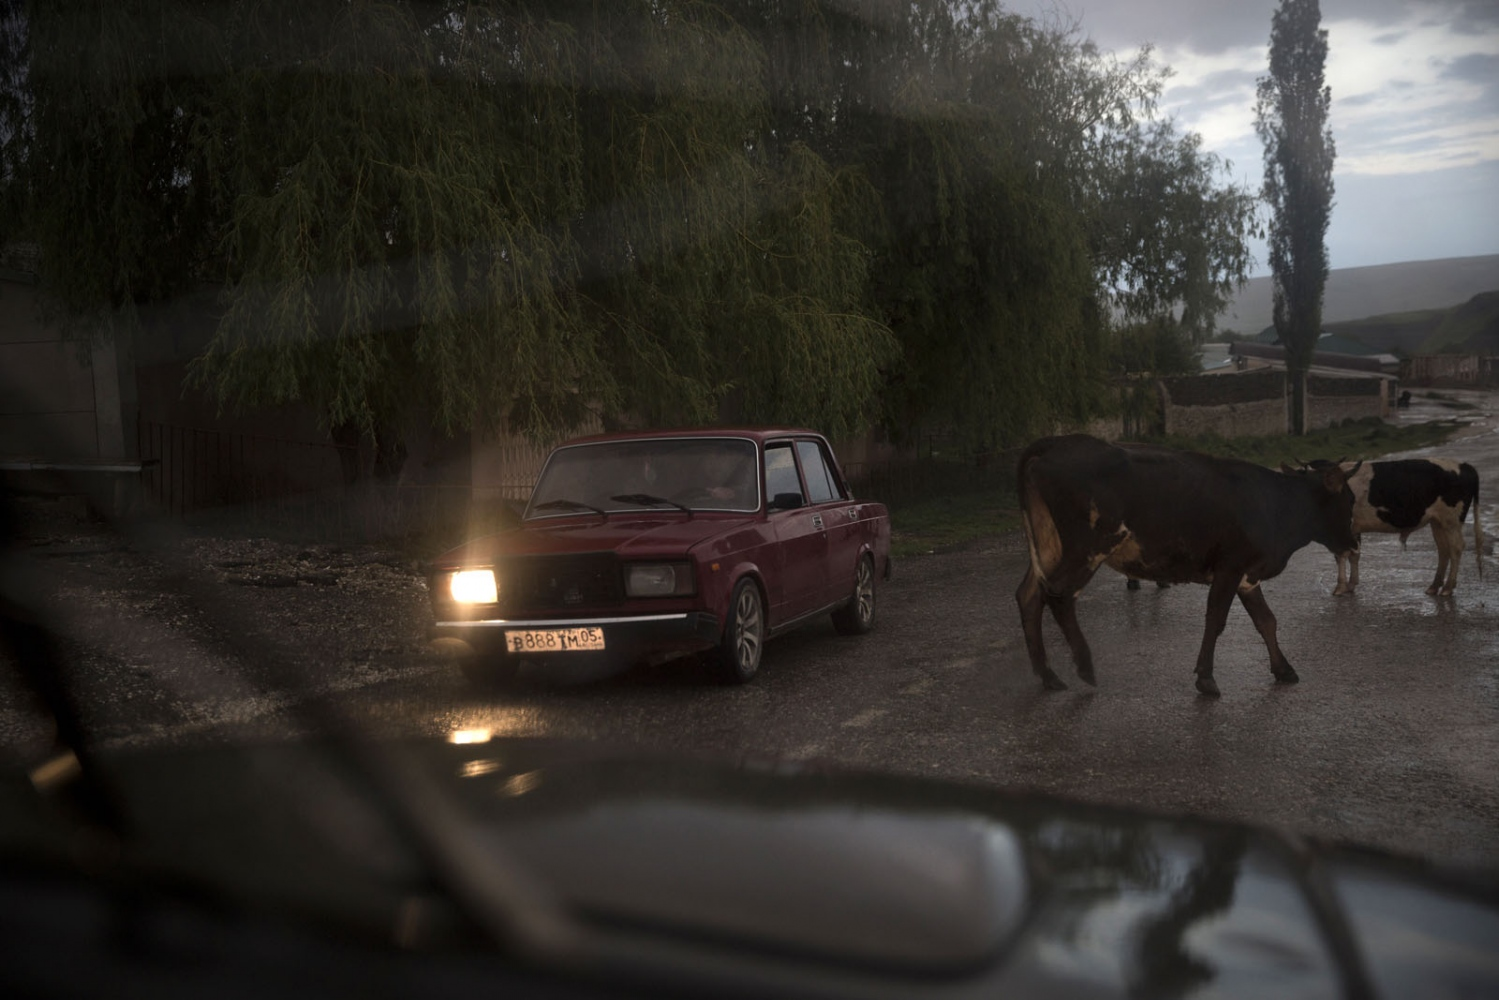 A man drives an old Lada car past a herd of cows.